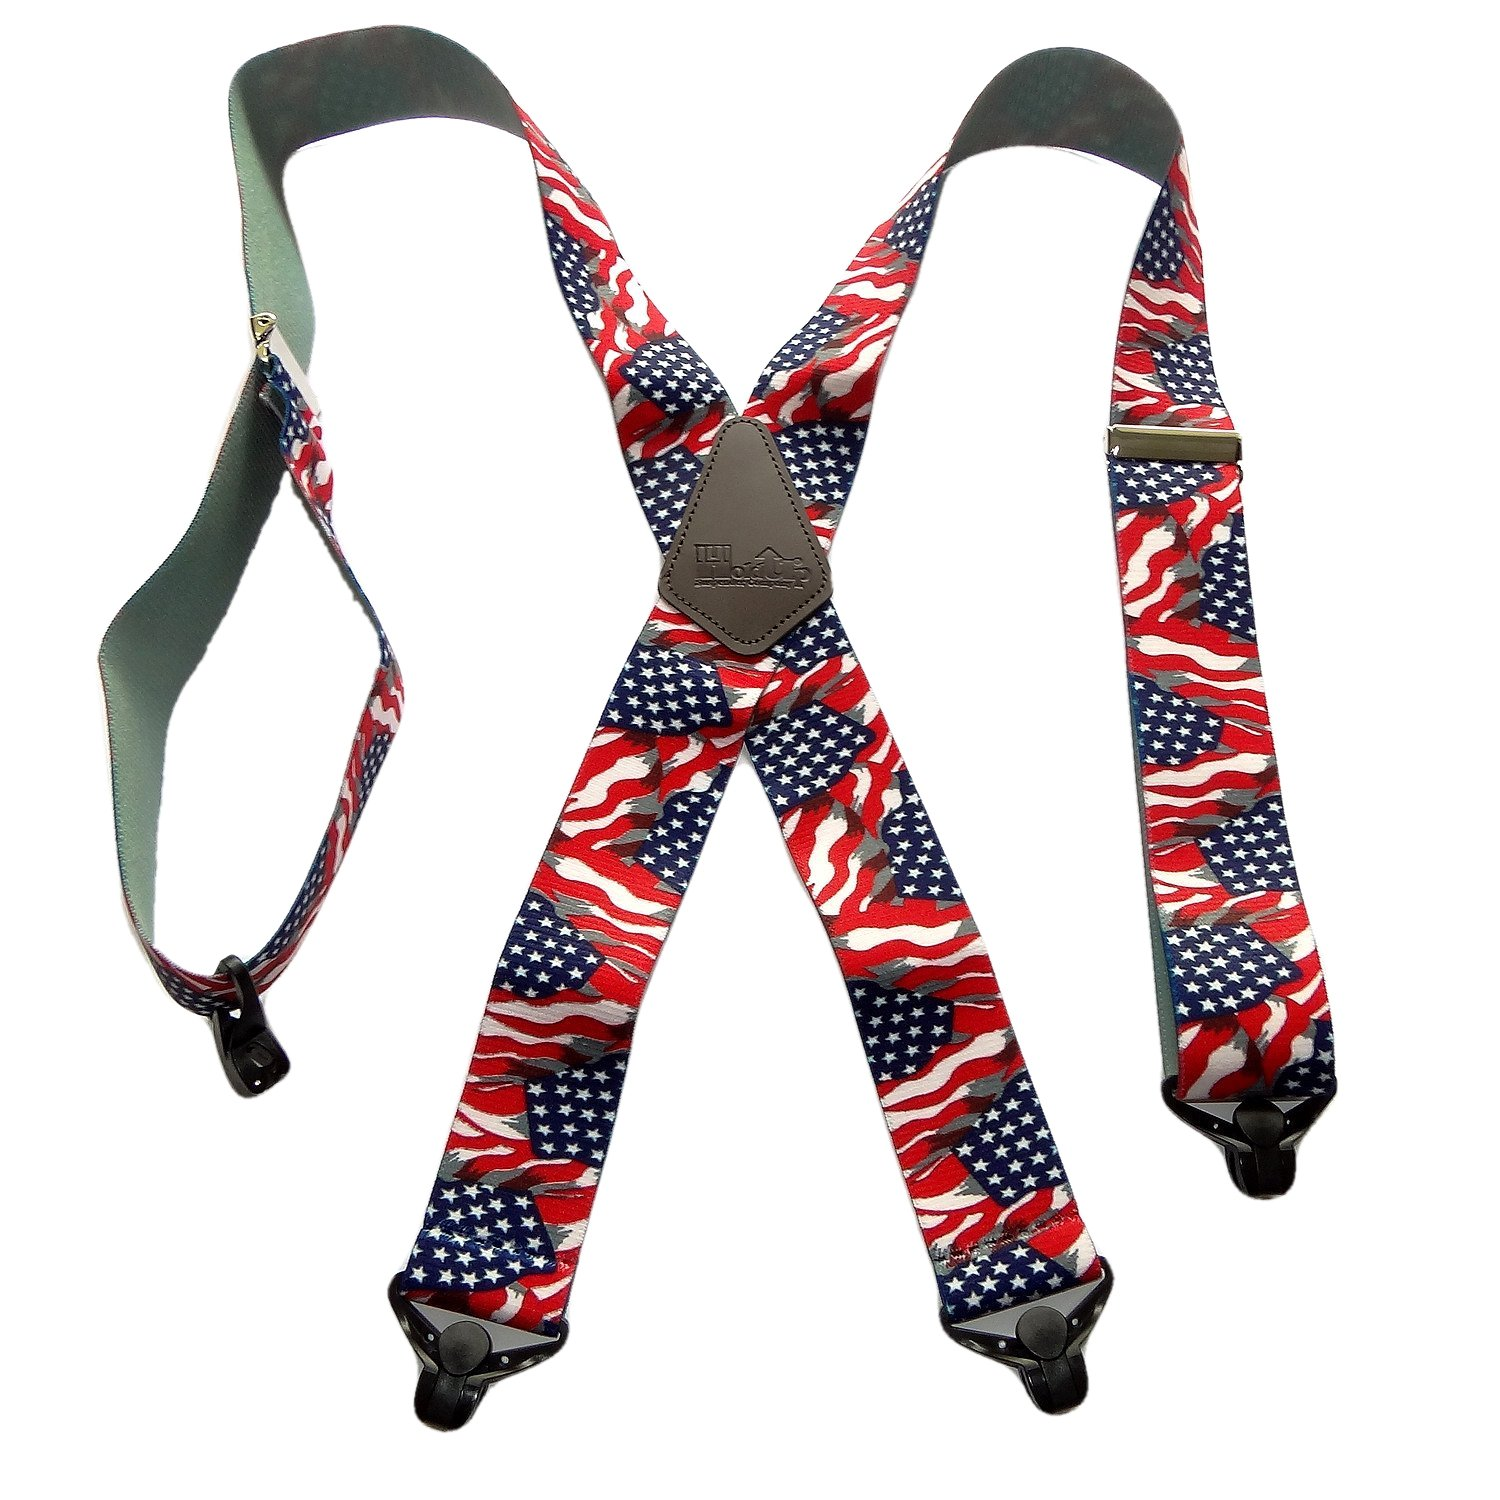 Holdup Suspender Company's Heavy Duty US Flag 2'' Wide Suspenders with Patented Gripper Clasps